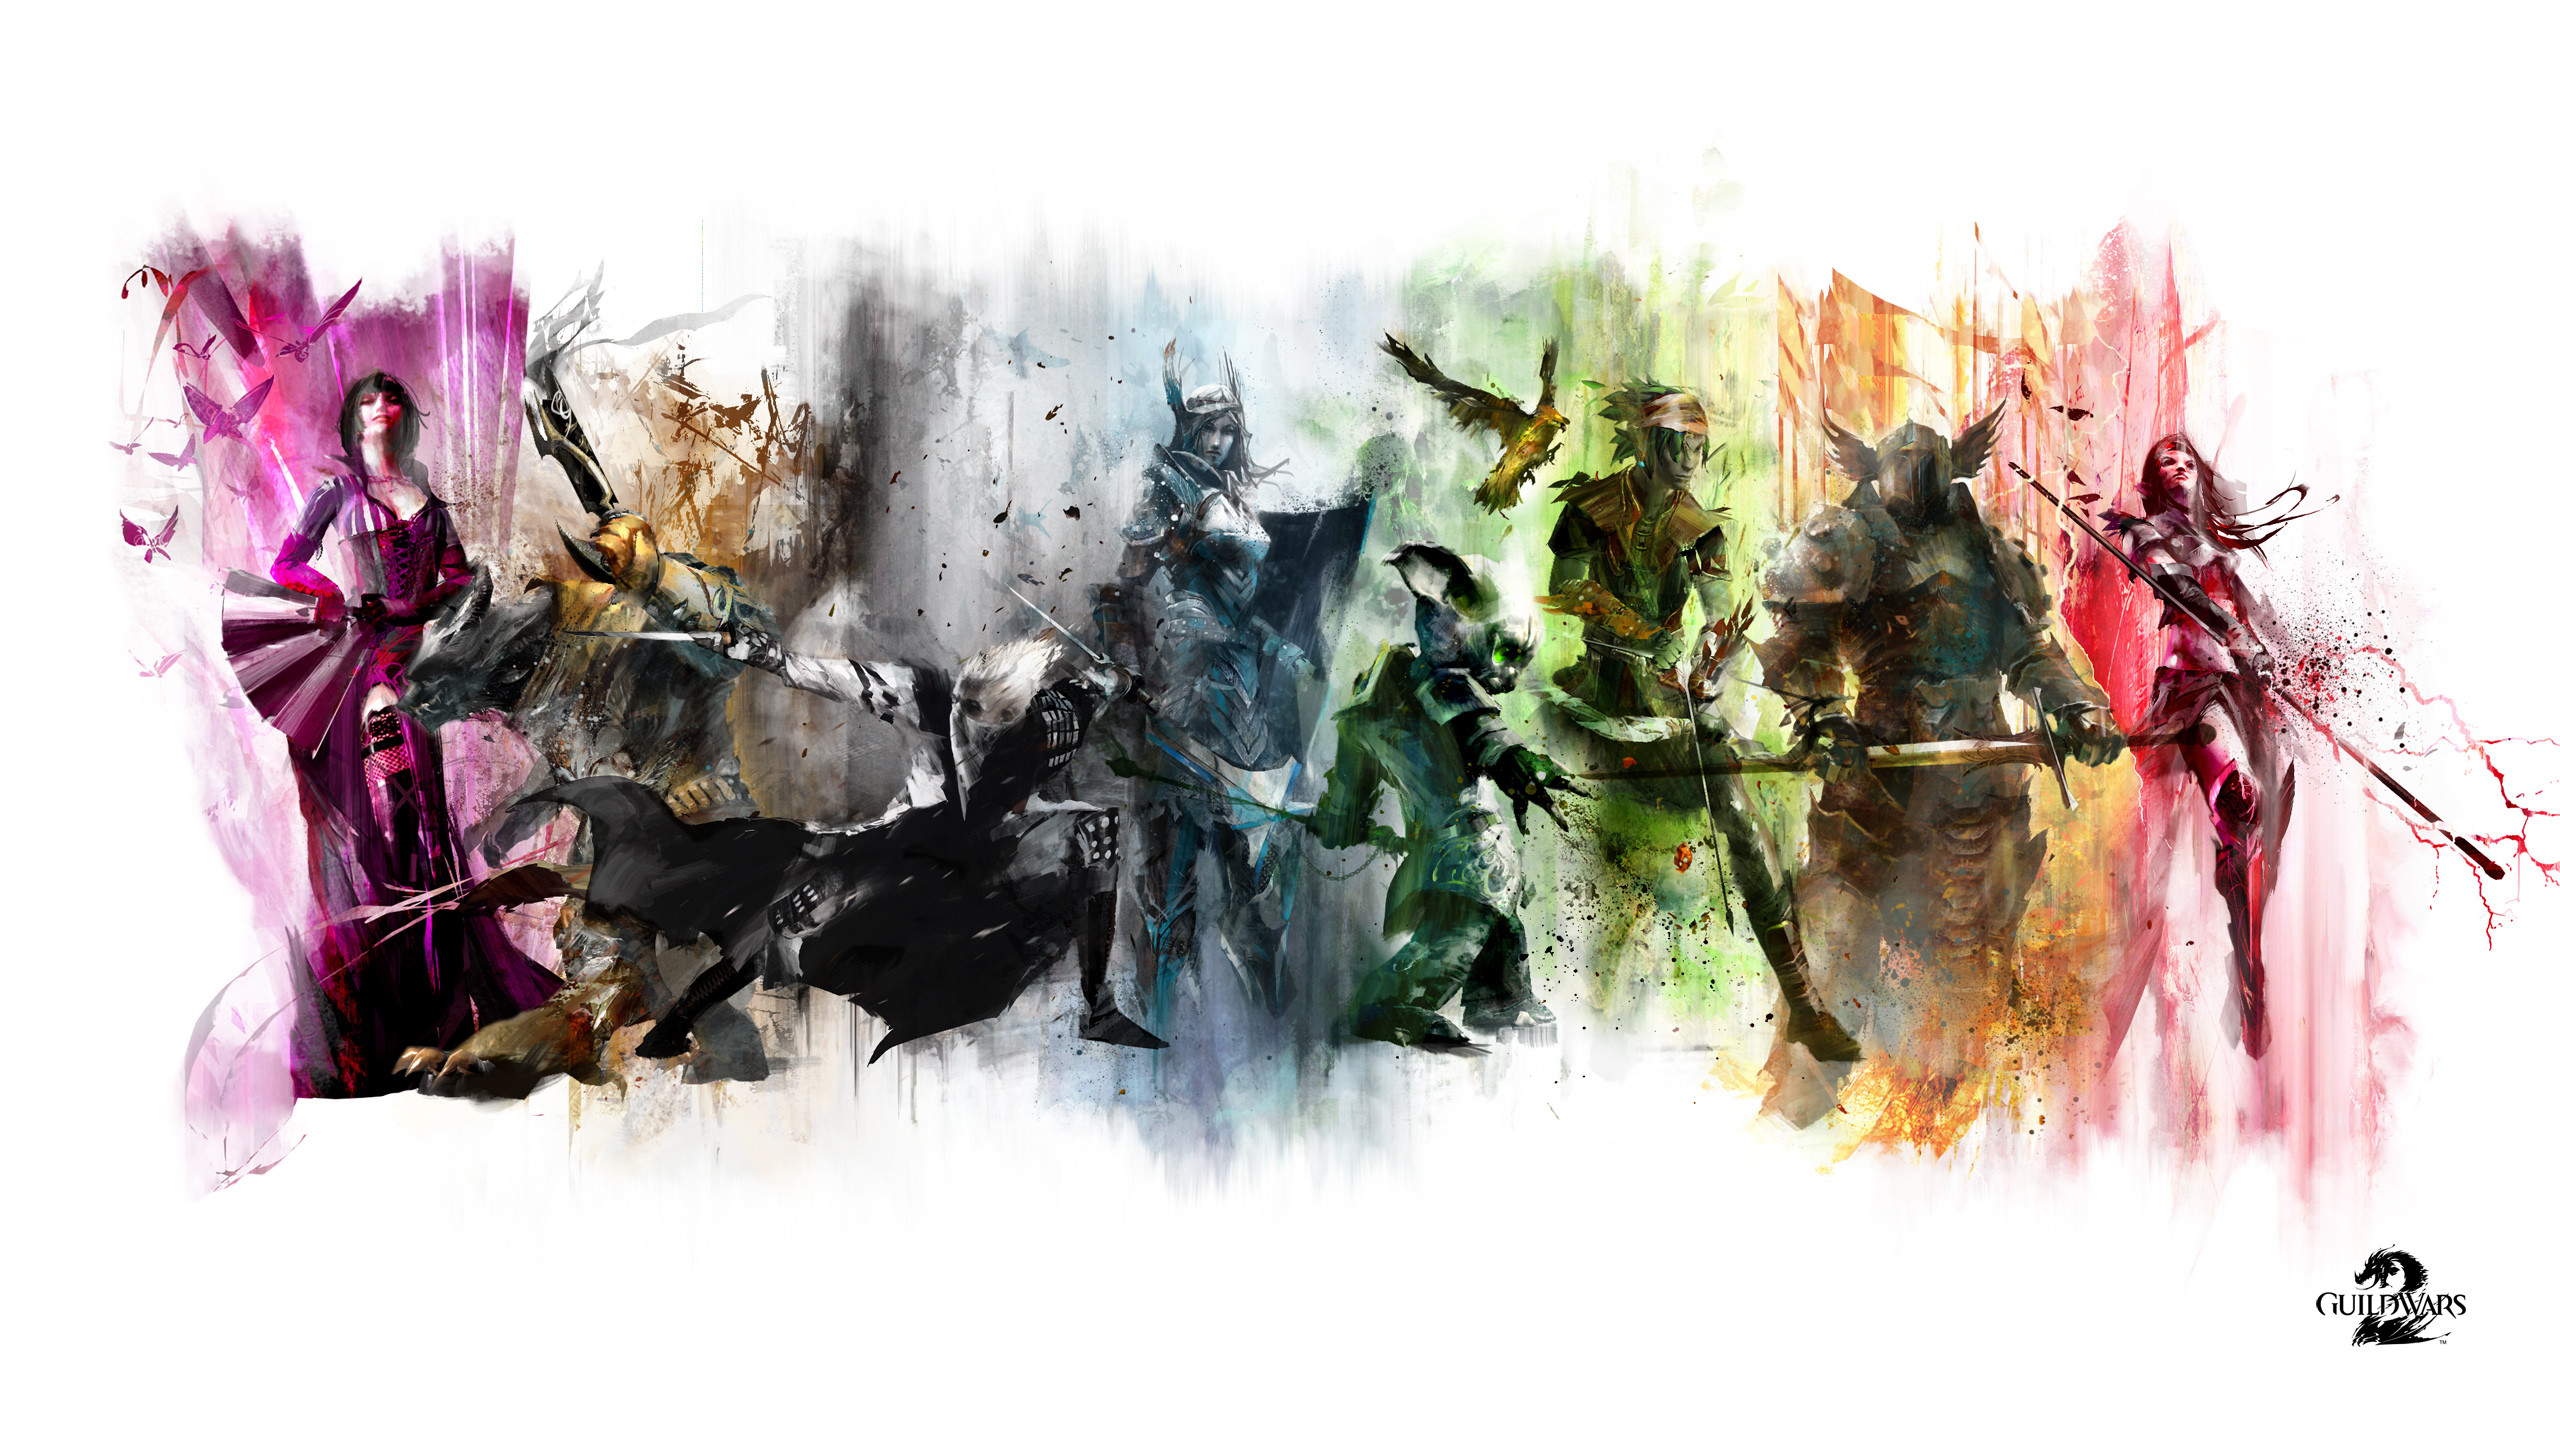 Youtube Channel Art Gaming 1302977 With Resolutions 2560&2151440 Pixel